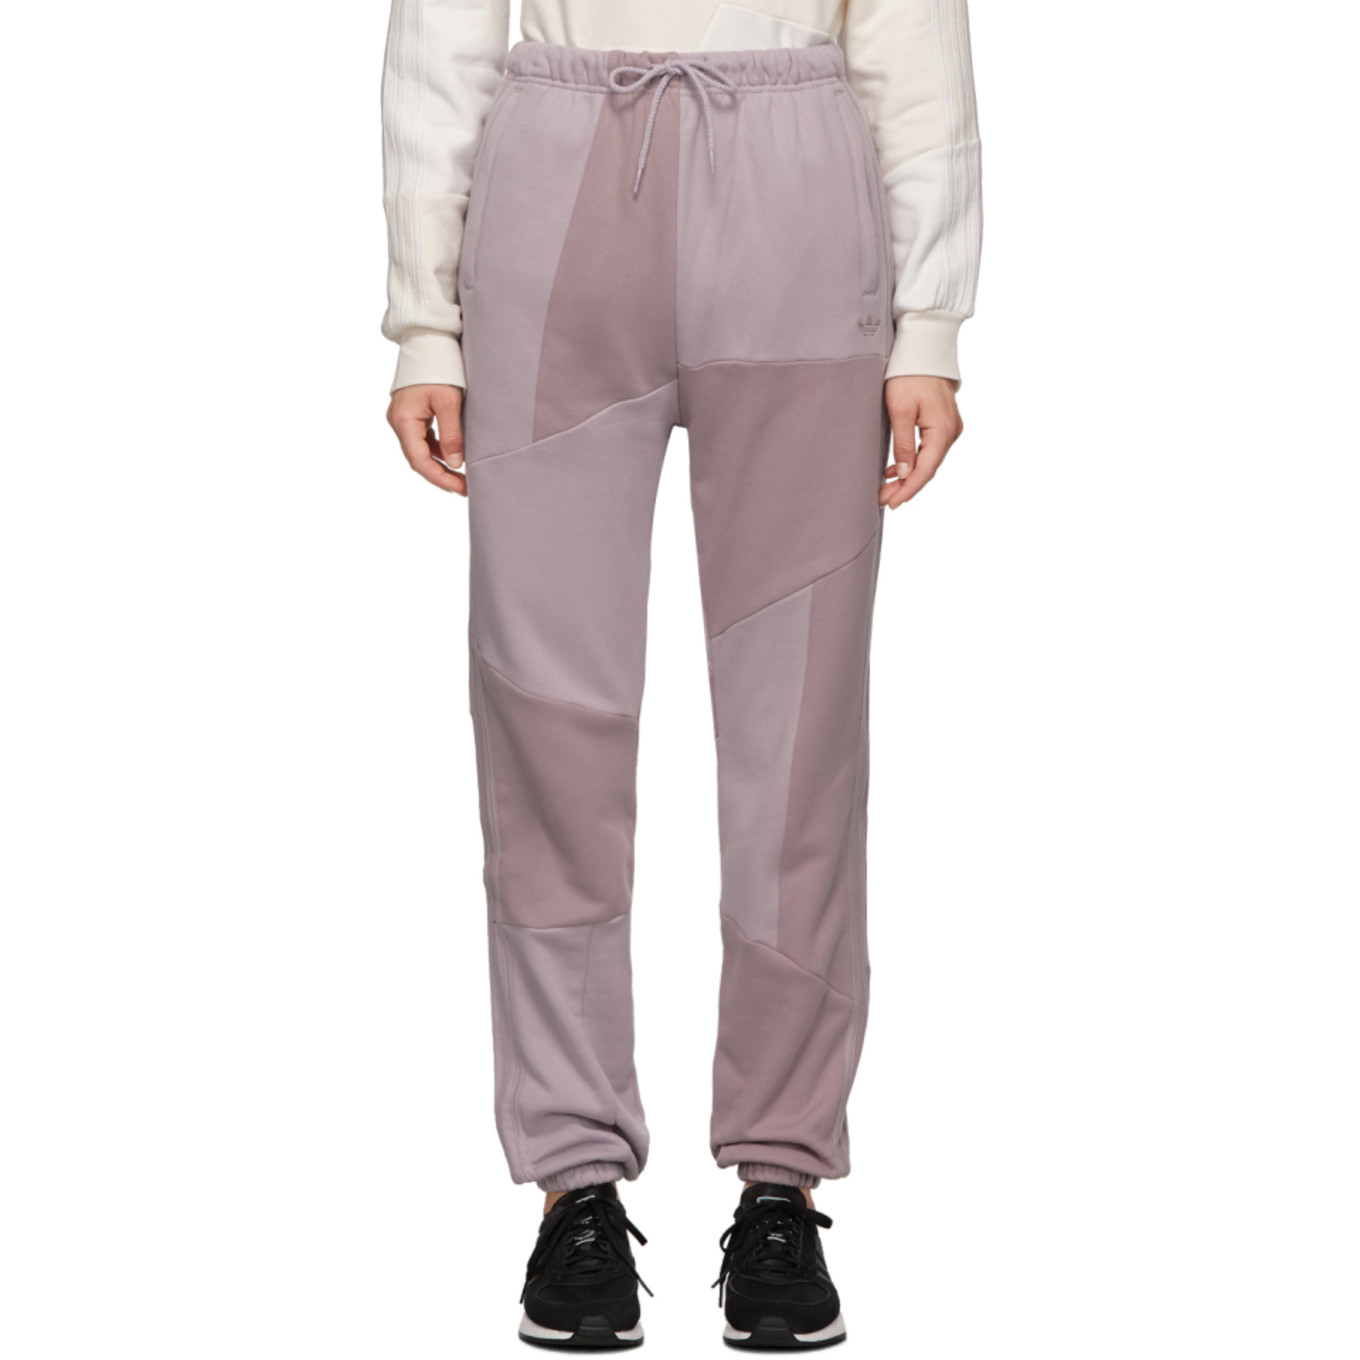 Purple Dc Lounge Pants by Adidas Originals By DaniËlle Cathari